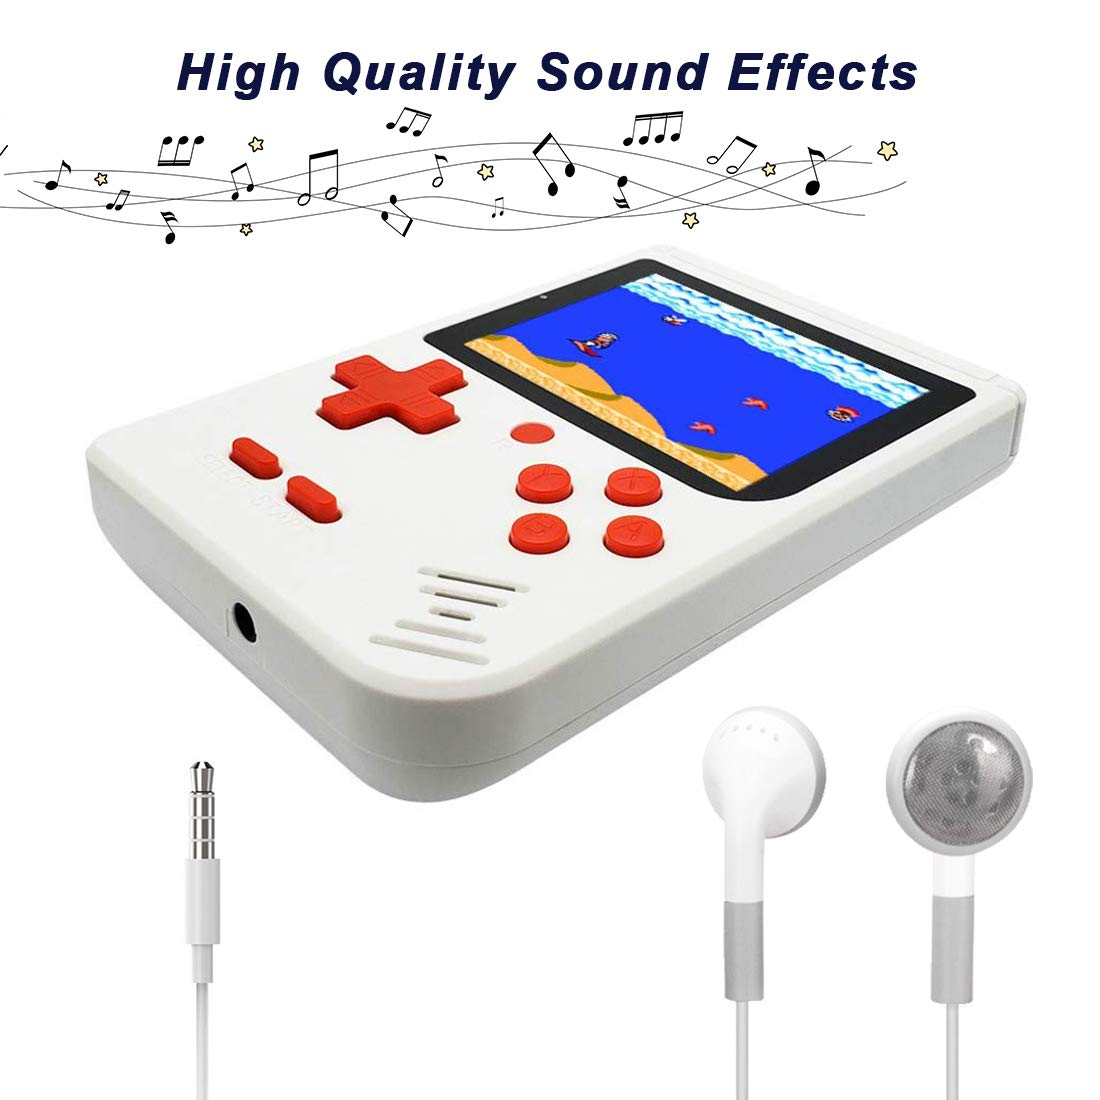 AKTOUGST Handheld Game Console, Retro Game Console 400 Classic Game FC System Video 3 Inch with Headphone Portable Mini Extra Joystick Controller Support TV 2 Player,Gift for Children Adult, (White) by AKTOUGST (Image #5)